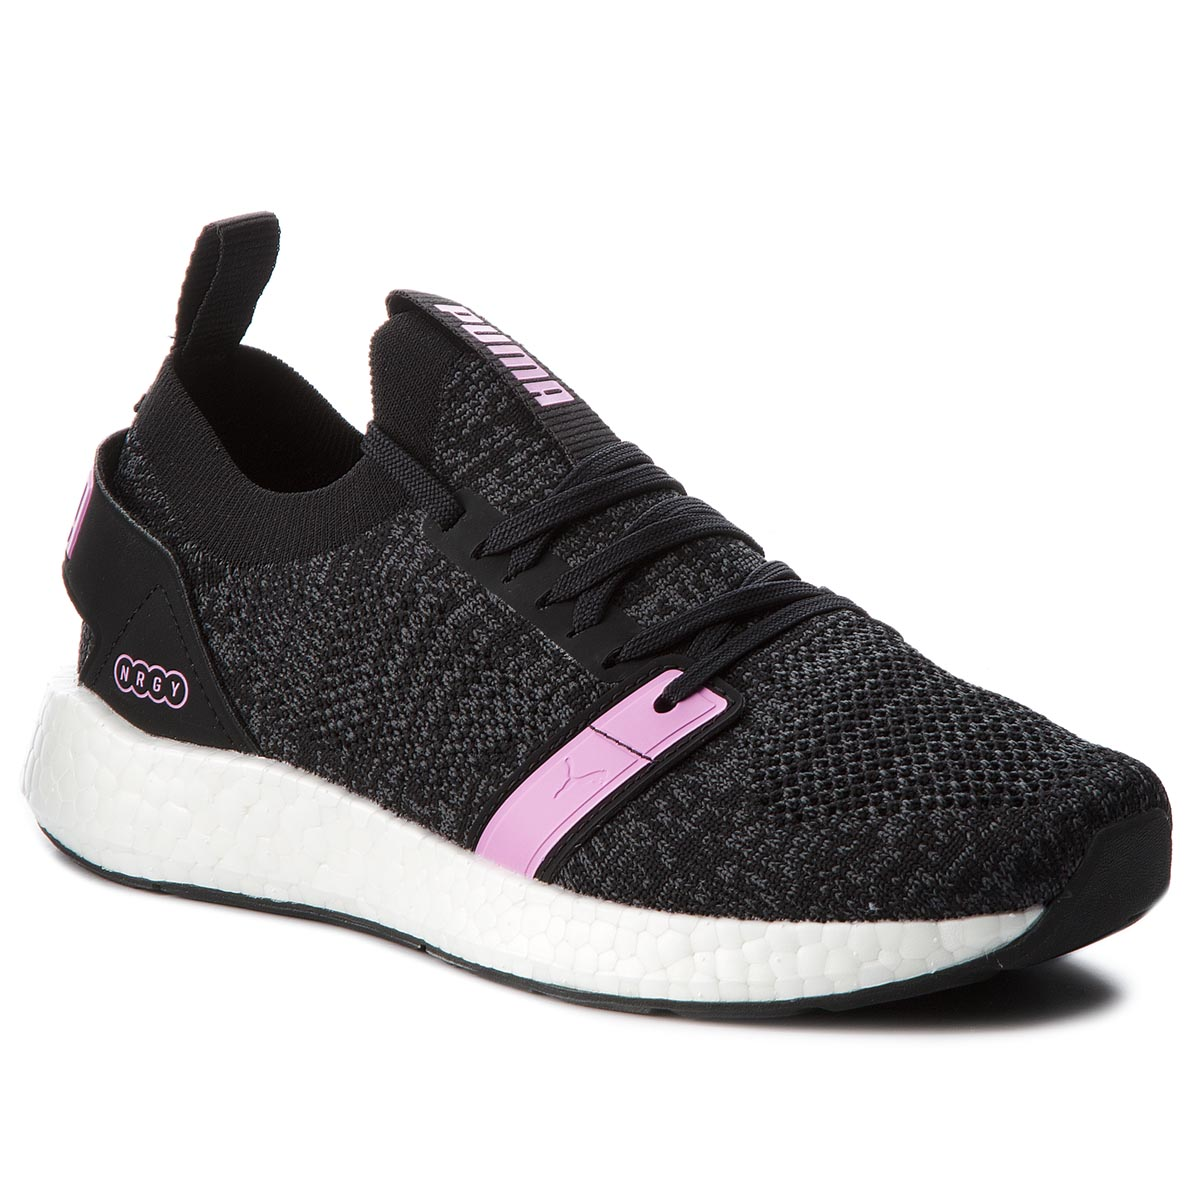 fc5fae95 Sneakers PUMA Ngry Neko Engineer Knit Wns 191094 01 Puma Black/Iron  Gate/Orchid